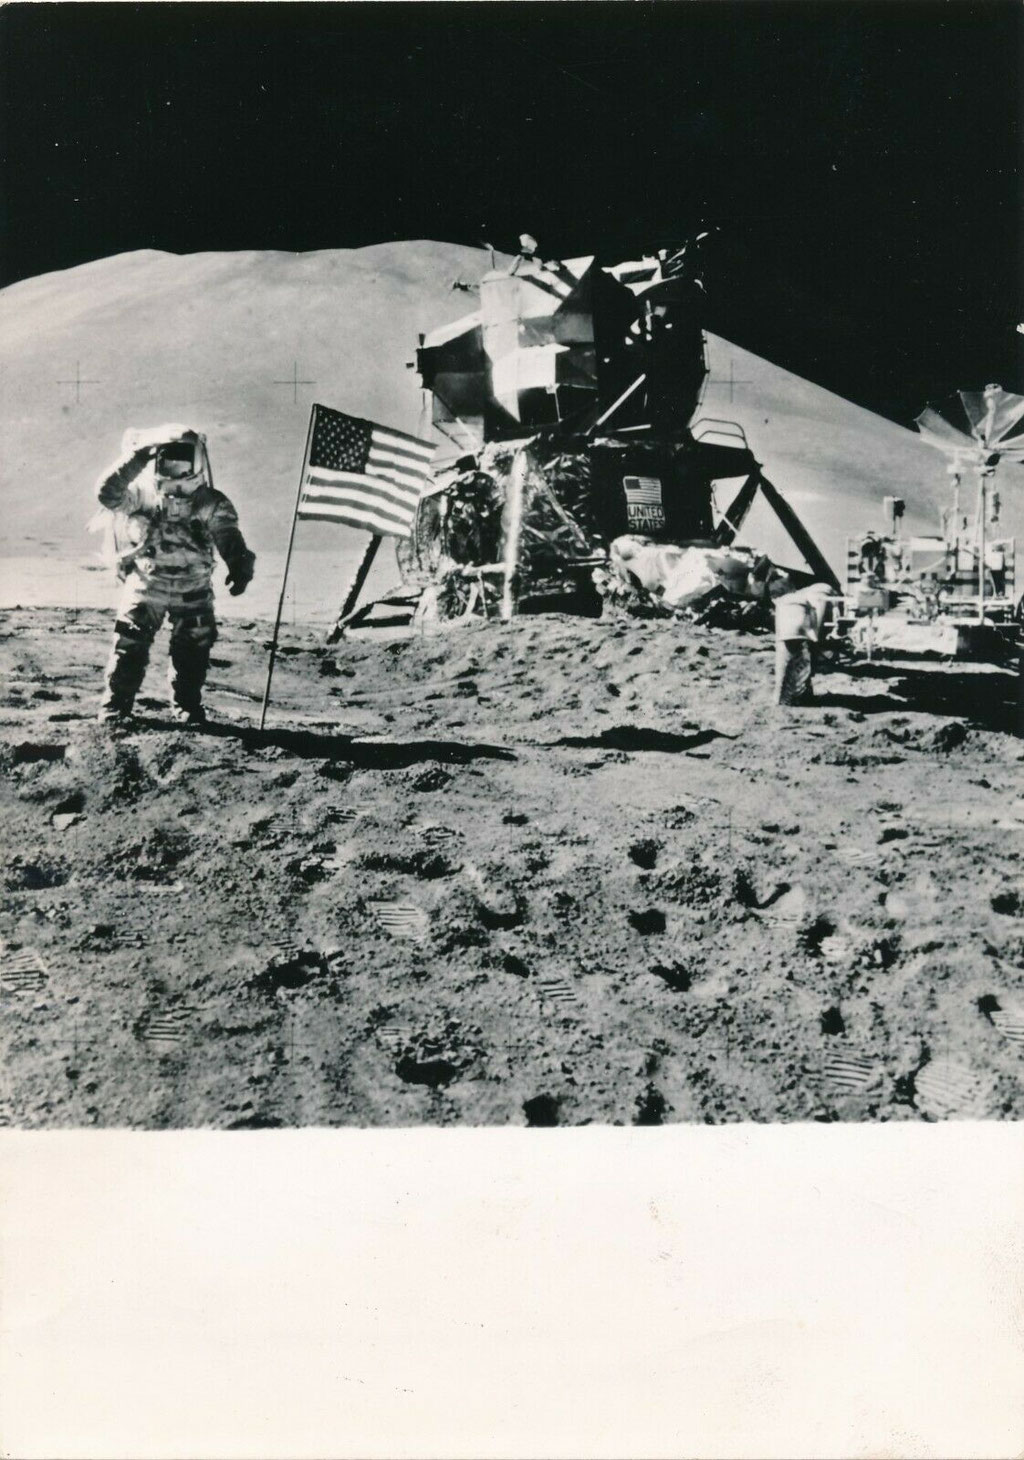 Apollo 15 photographie